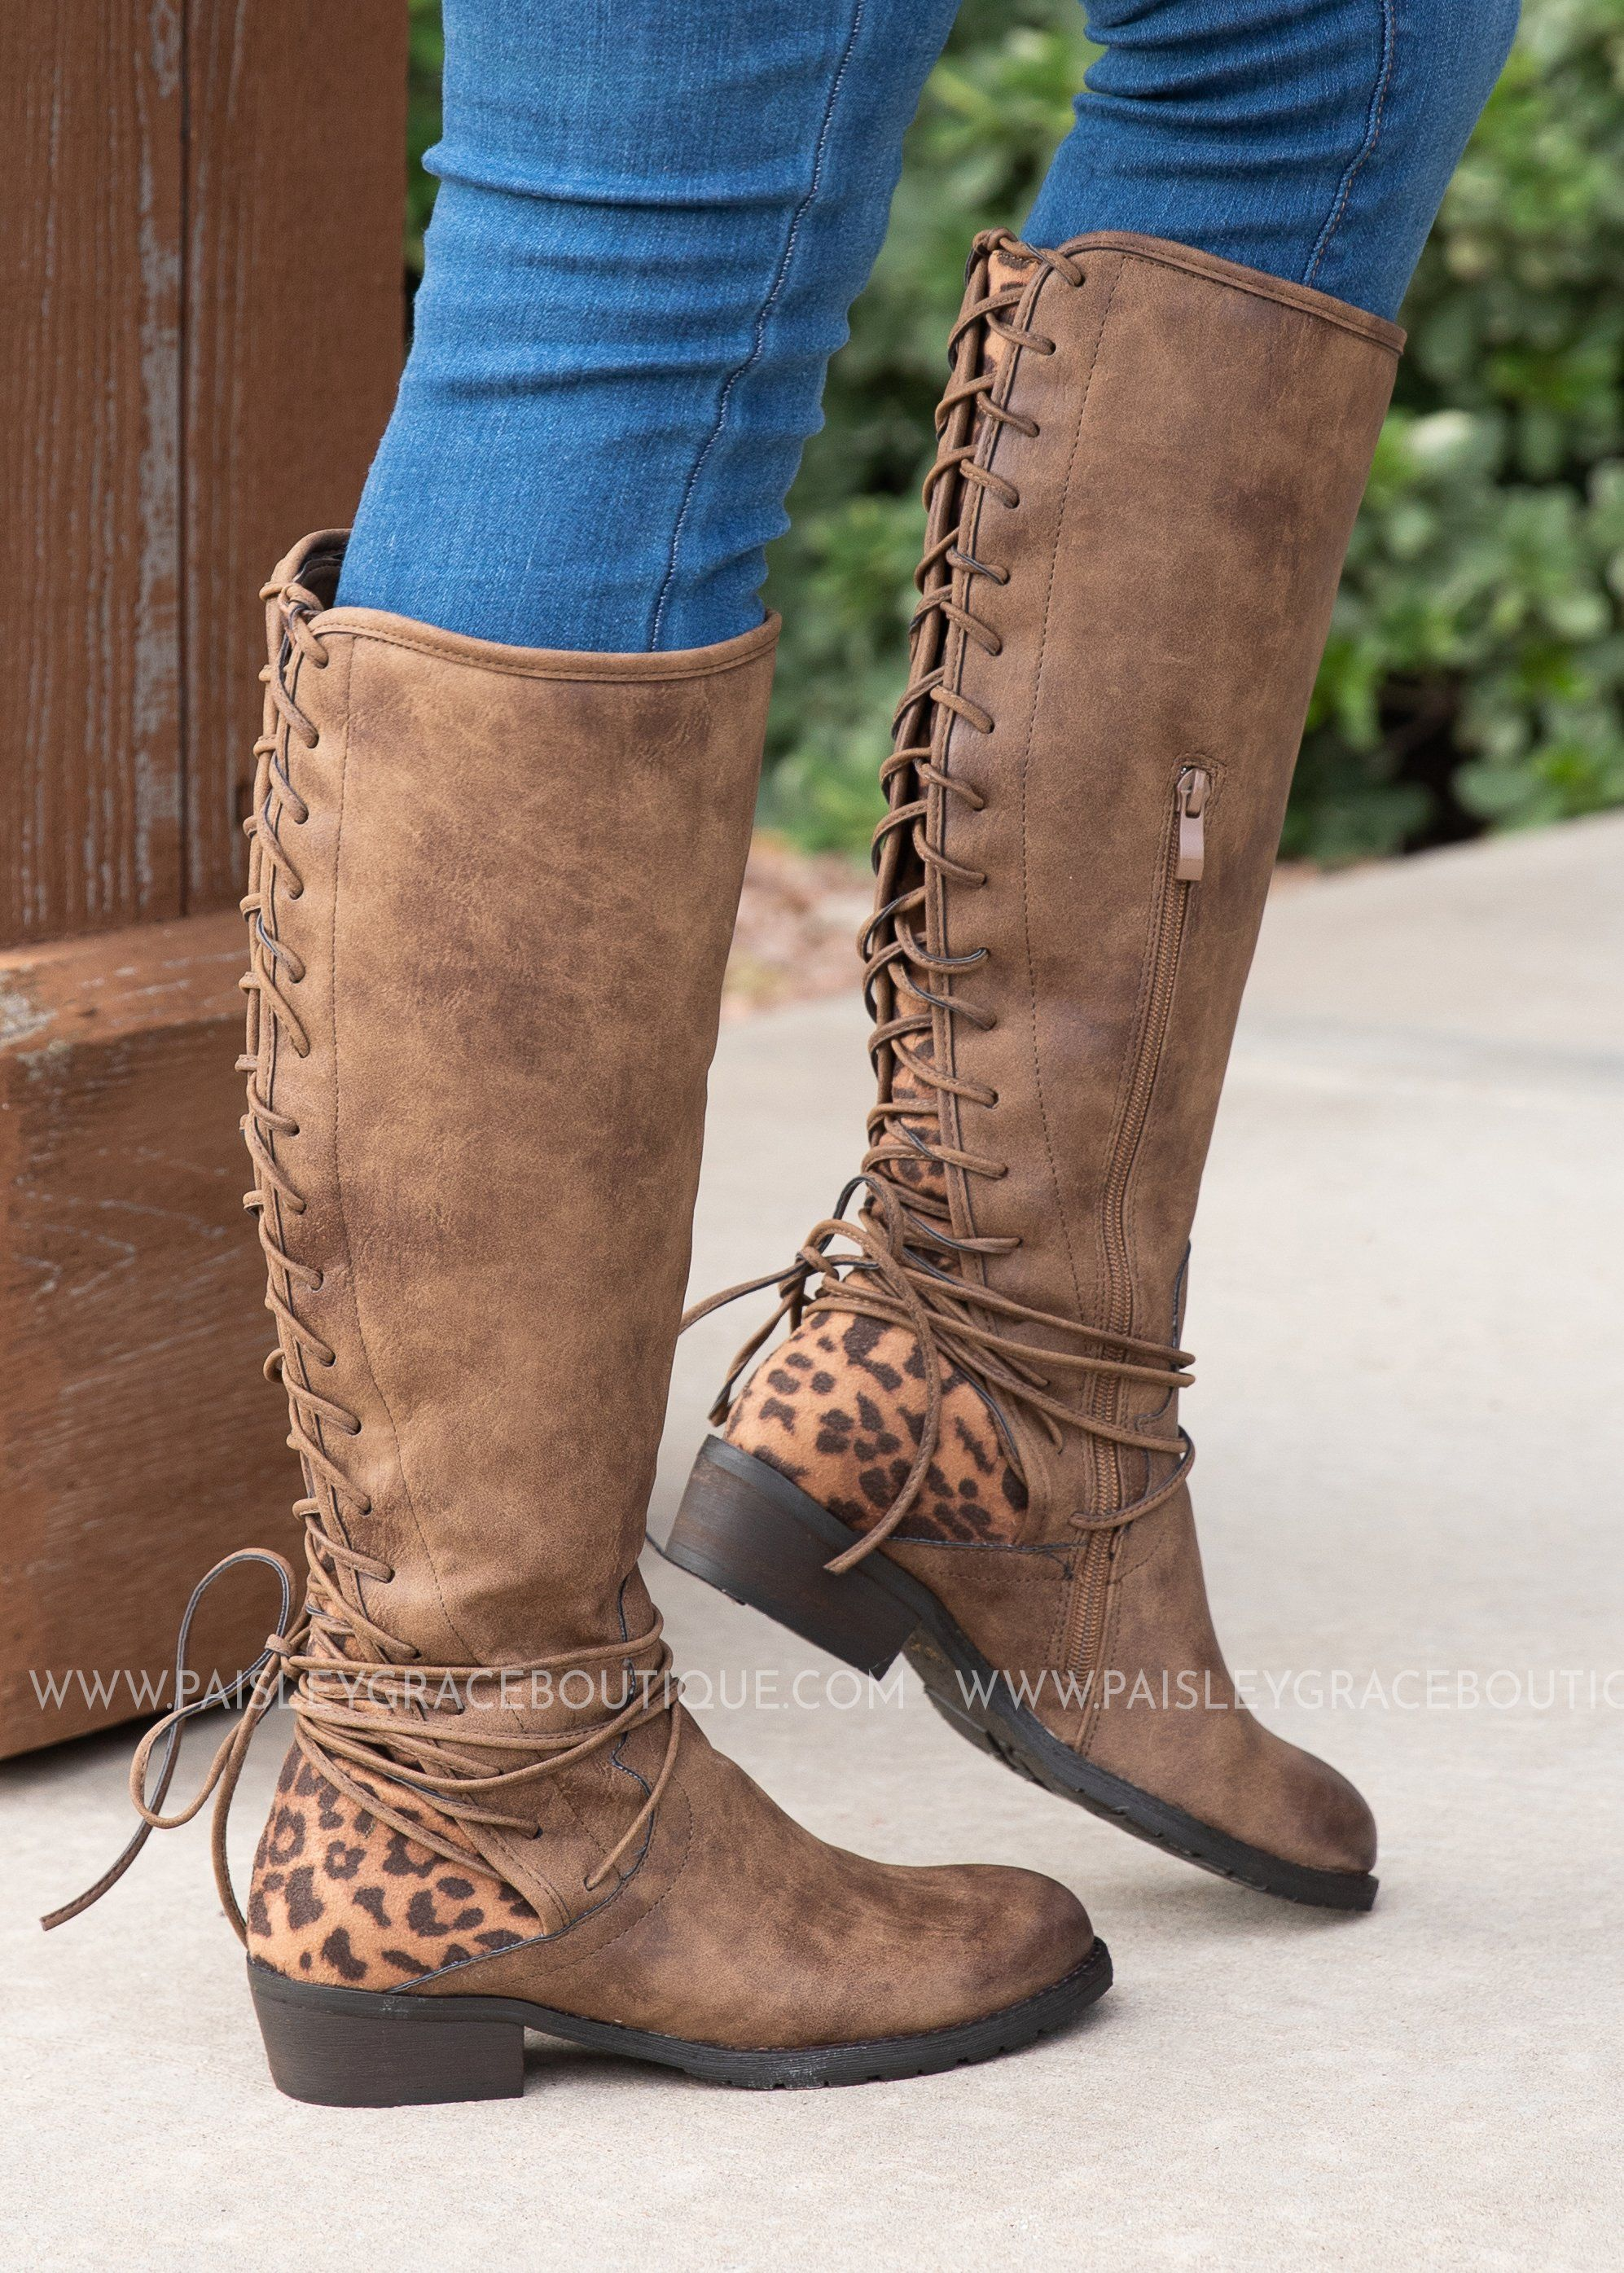 558cfb076c1 Leopard Back Lace Boots in 2019 | Products | Boots, Shoes, Tall ...